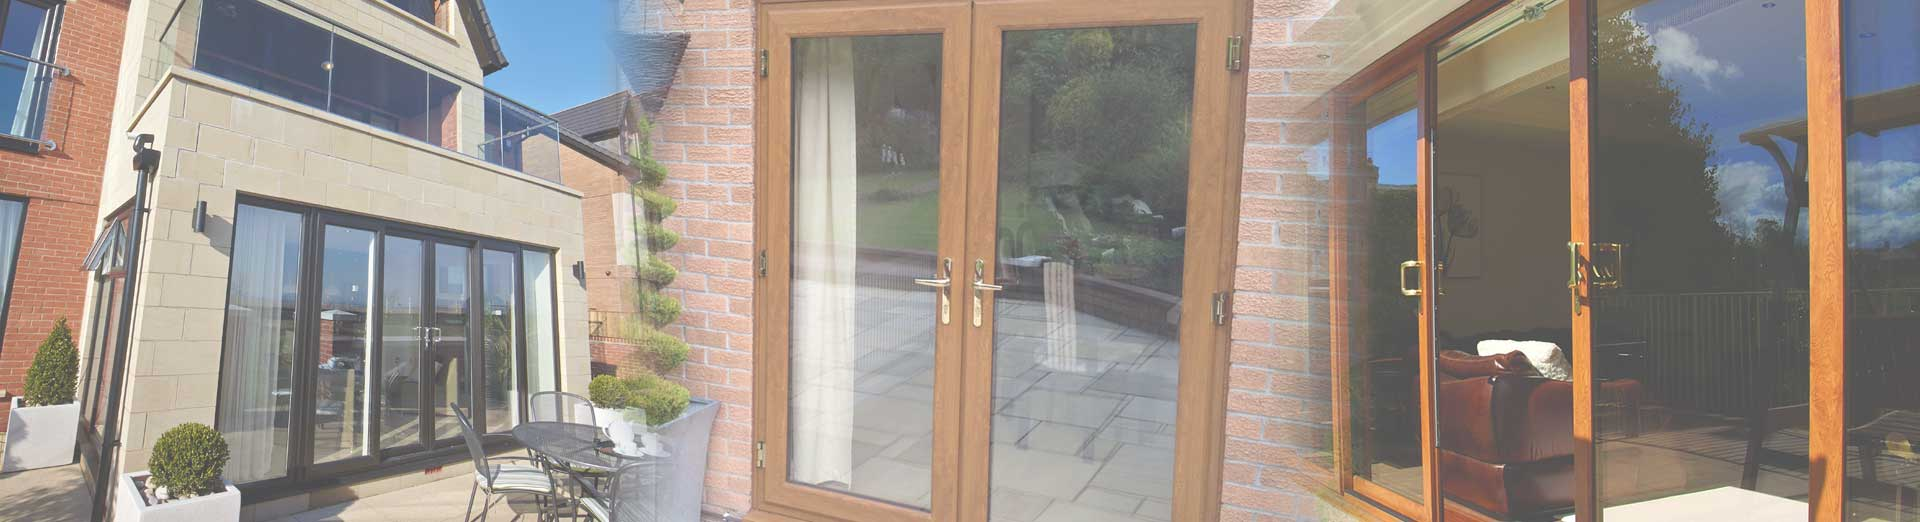 High Quality Double Glazing In South Wales Falcon